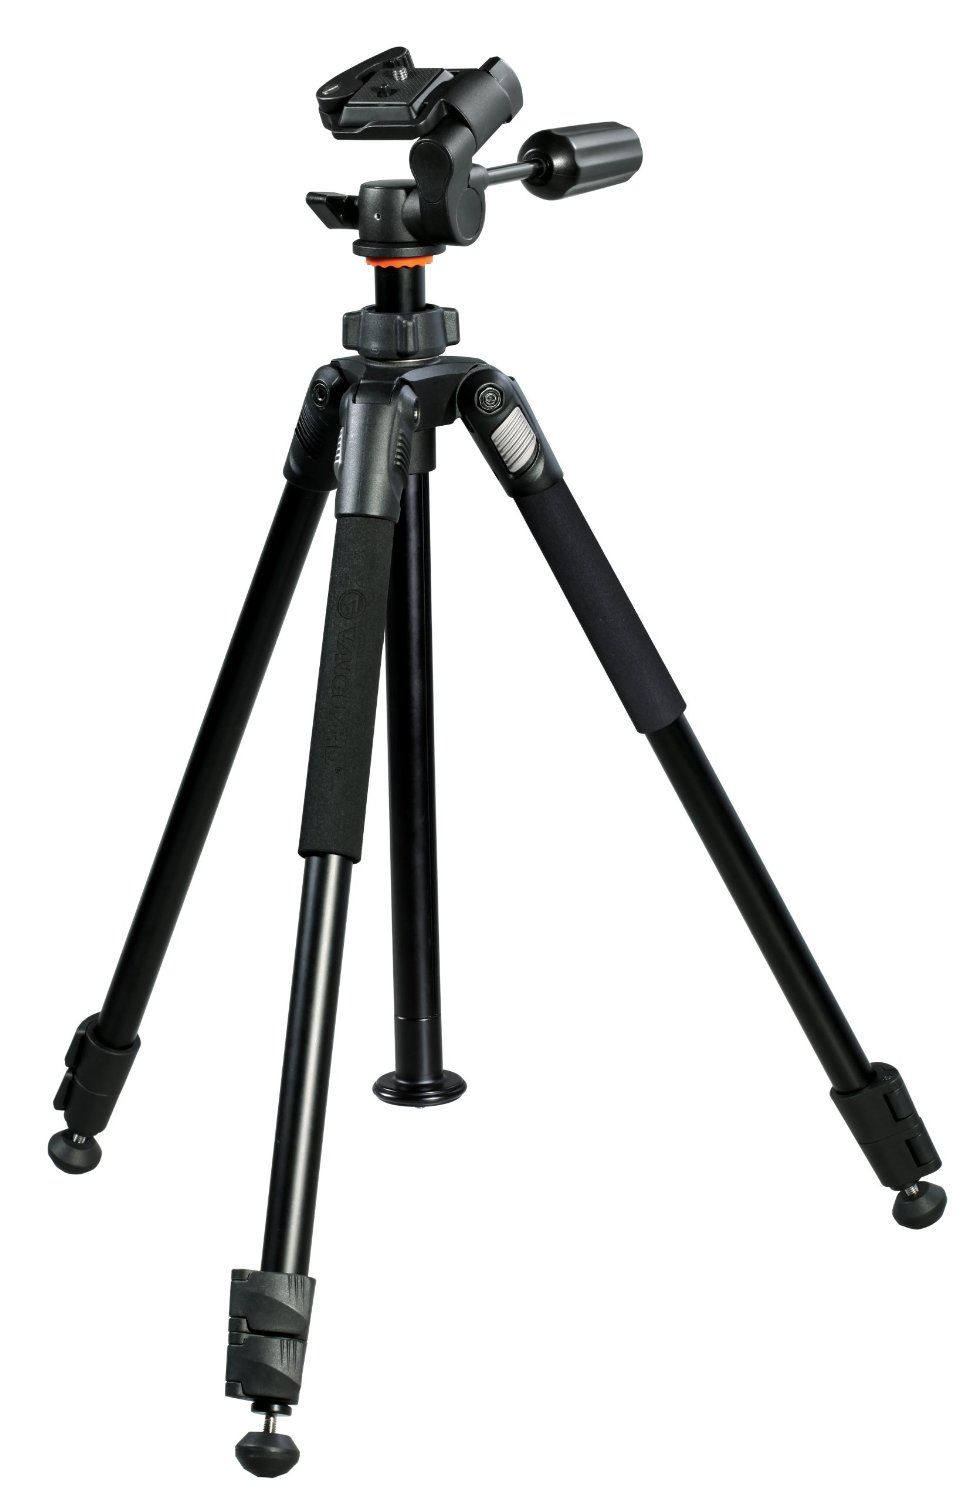 Digital Camera Tripod | Cameras | Pinterest | Best Camera tripod ...